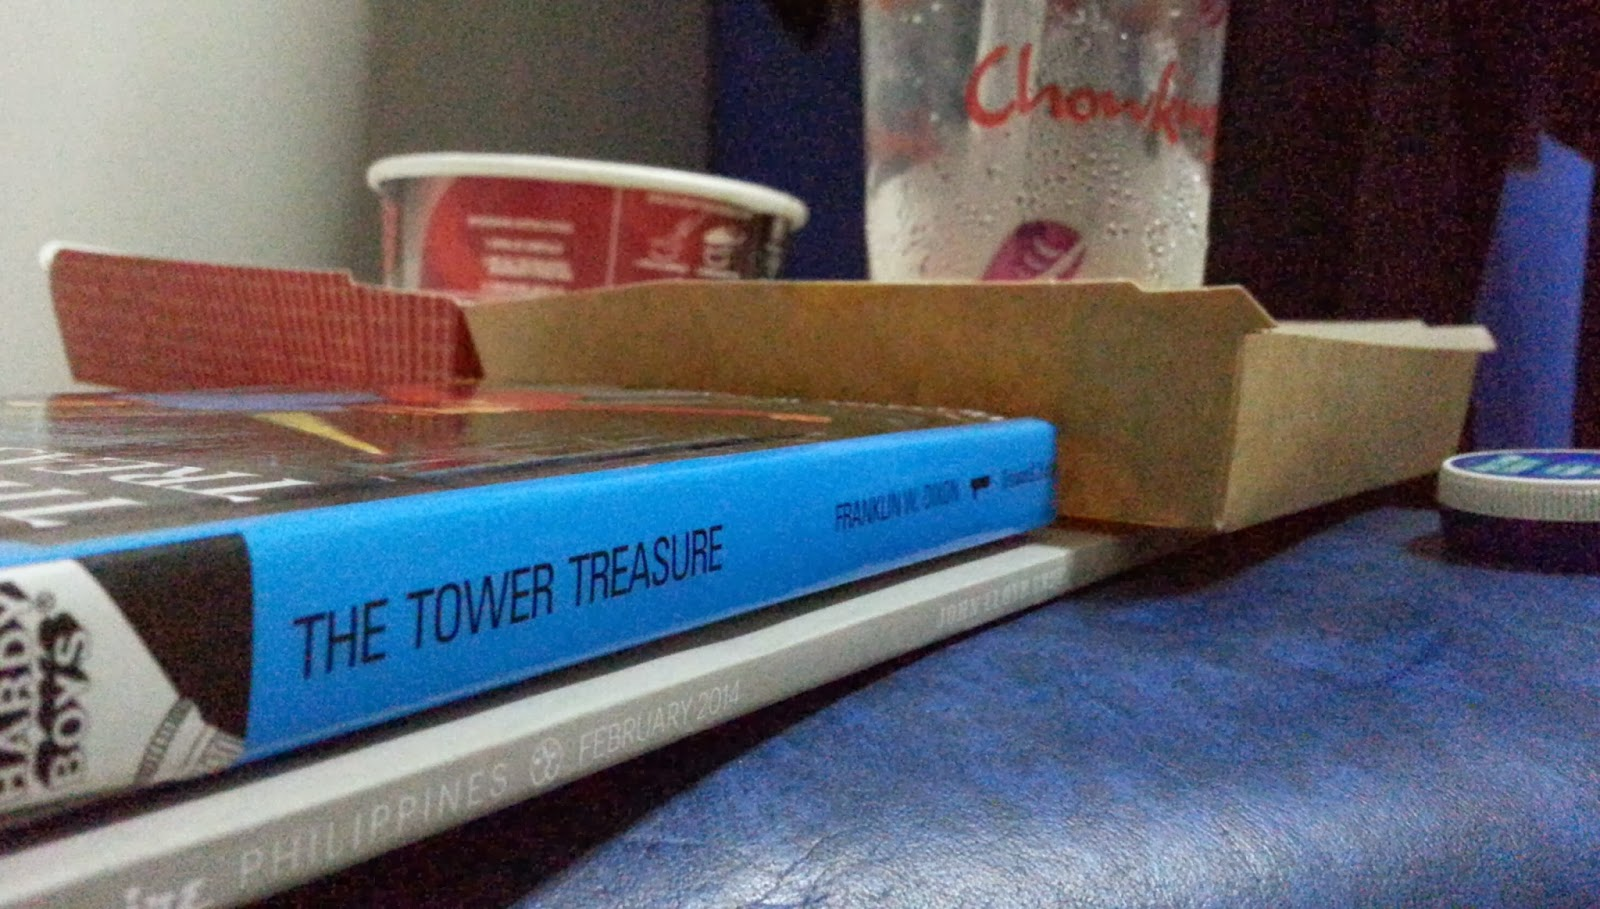 Hardy Boys, Esquire, Chowking delivery and Vicks VapoRub